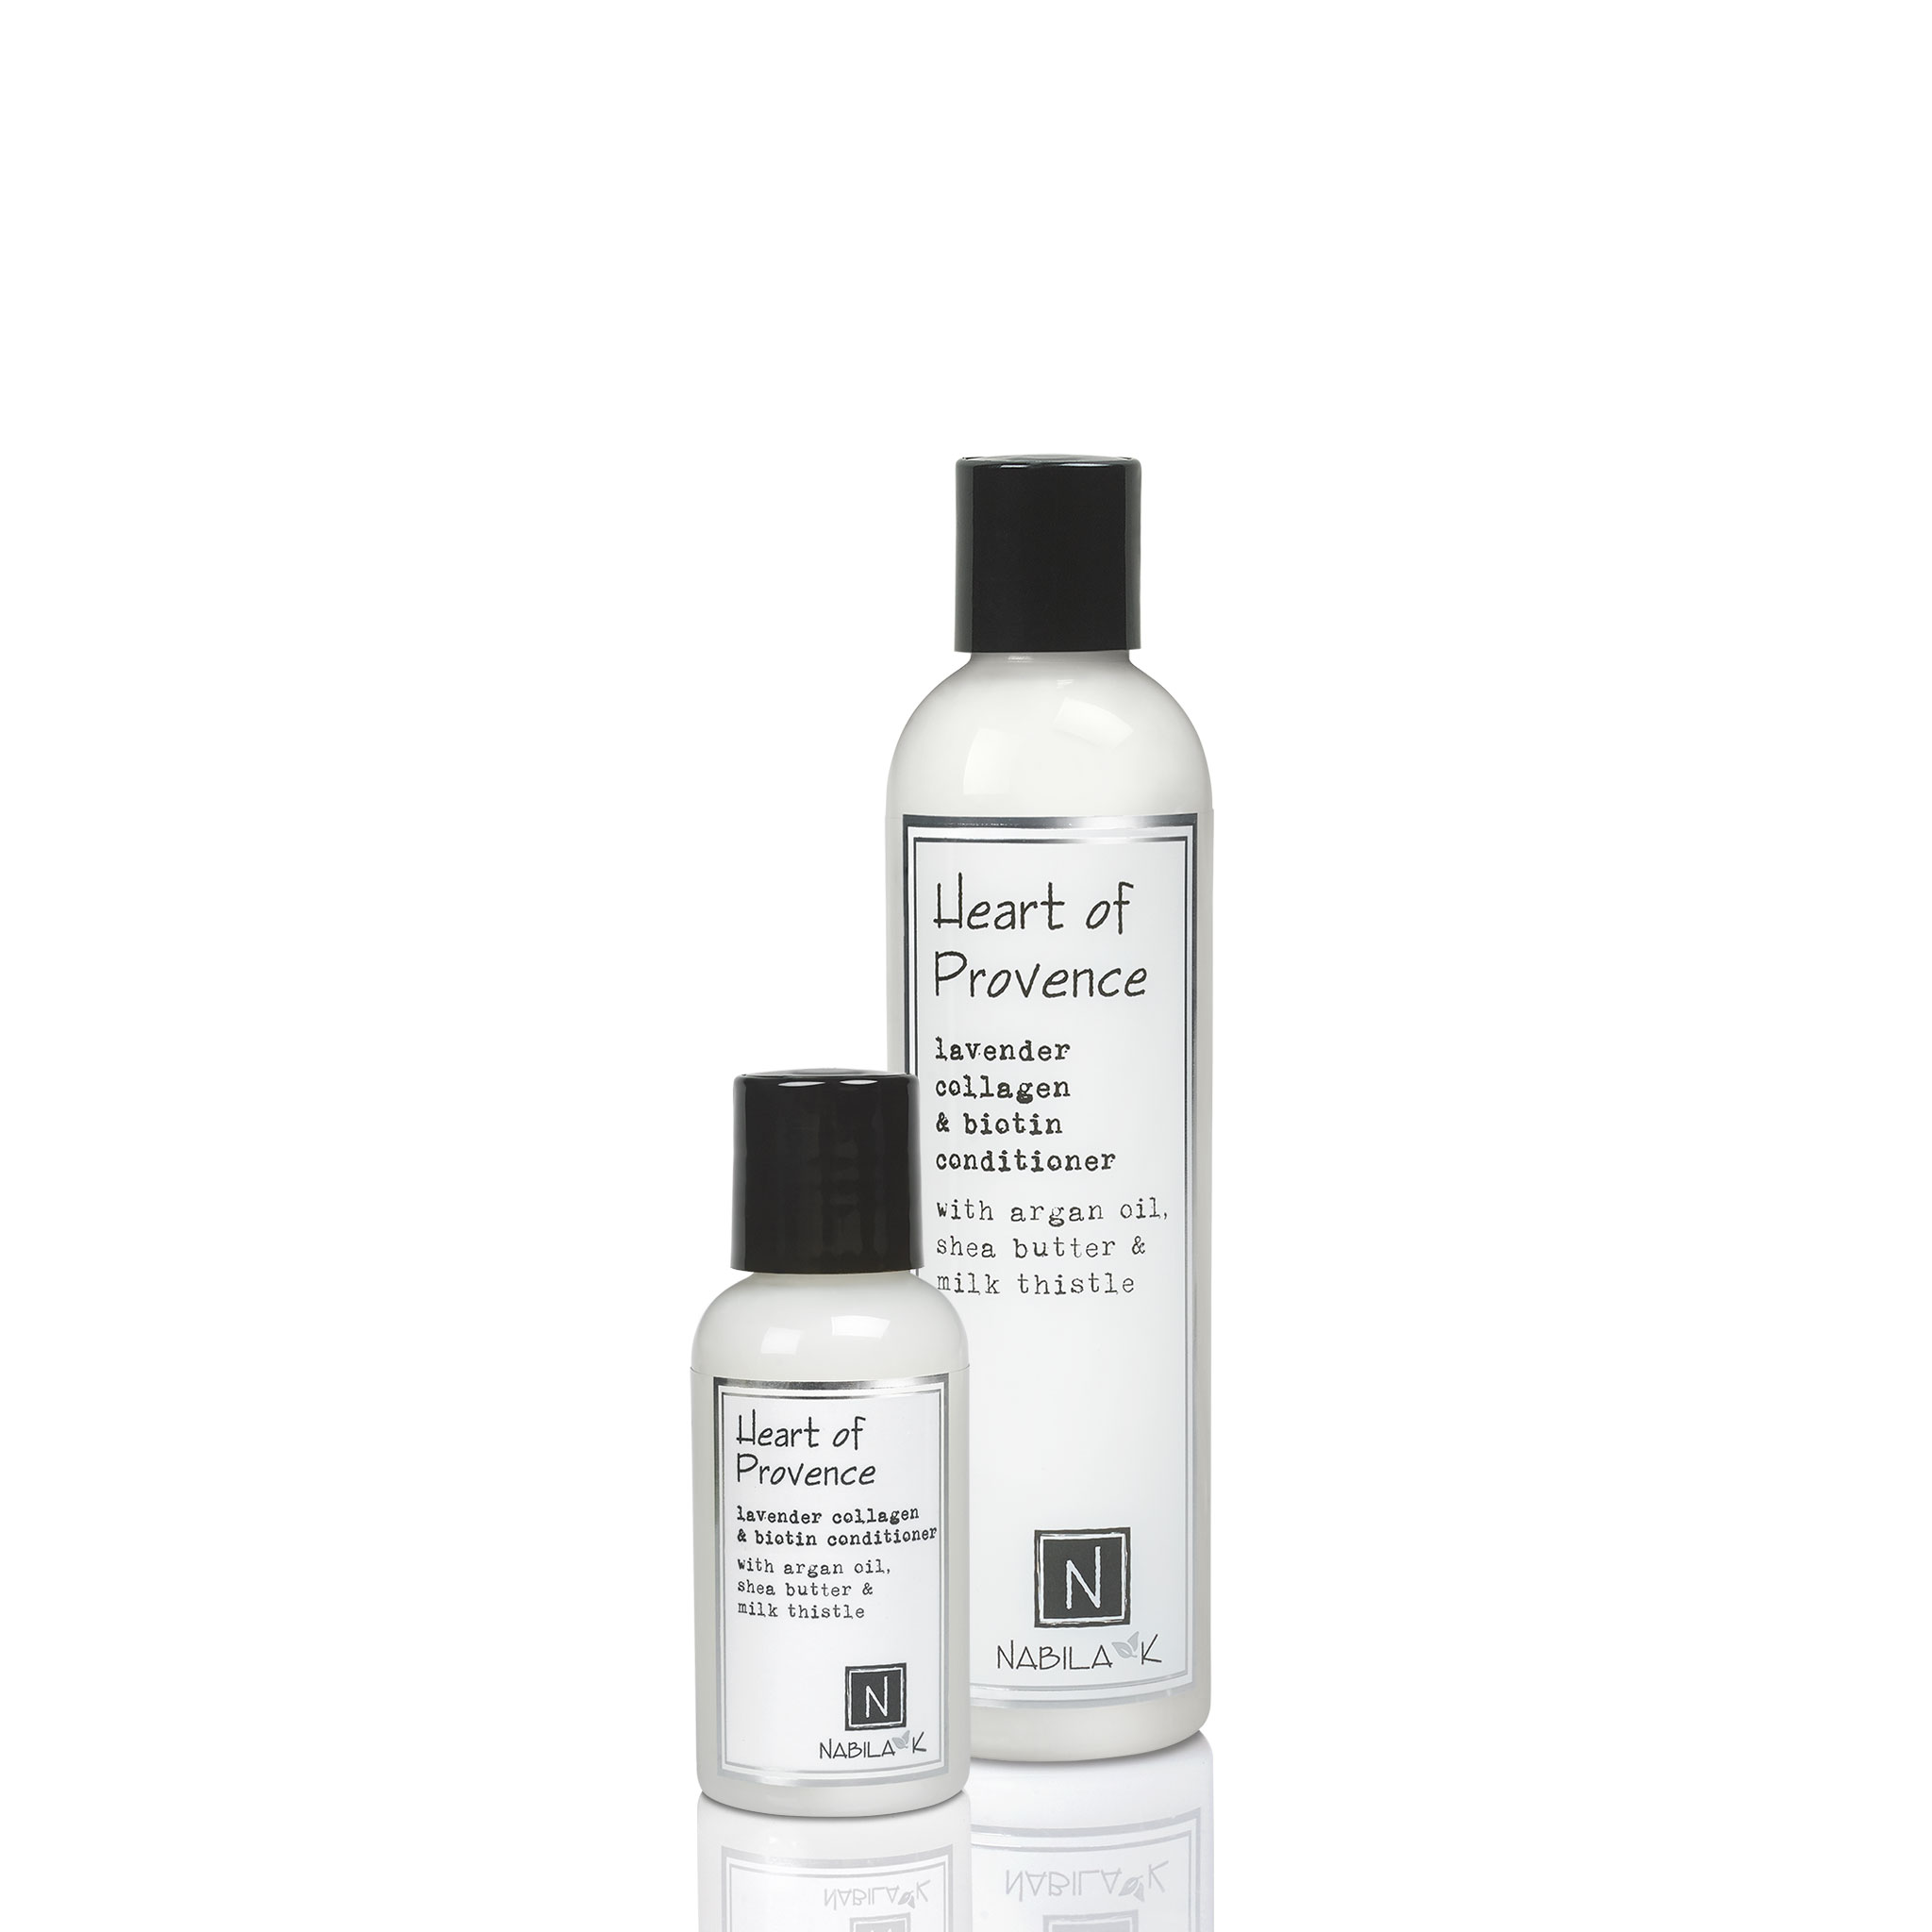 1 Travel and 1 Large Sized Bottle of Heart of Provence Lavendar Collagen and Biotin Conditioner with Argan Oil, Shea Butter, and Milk Thistle